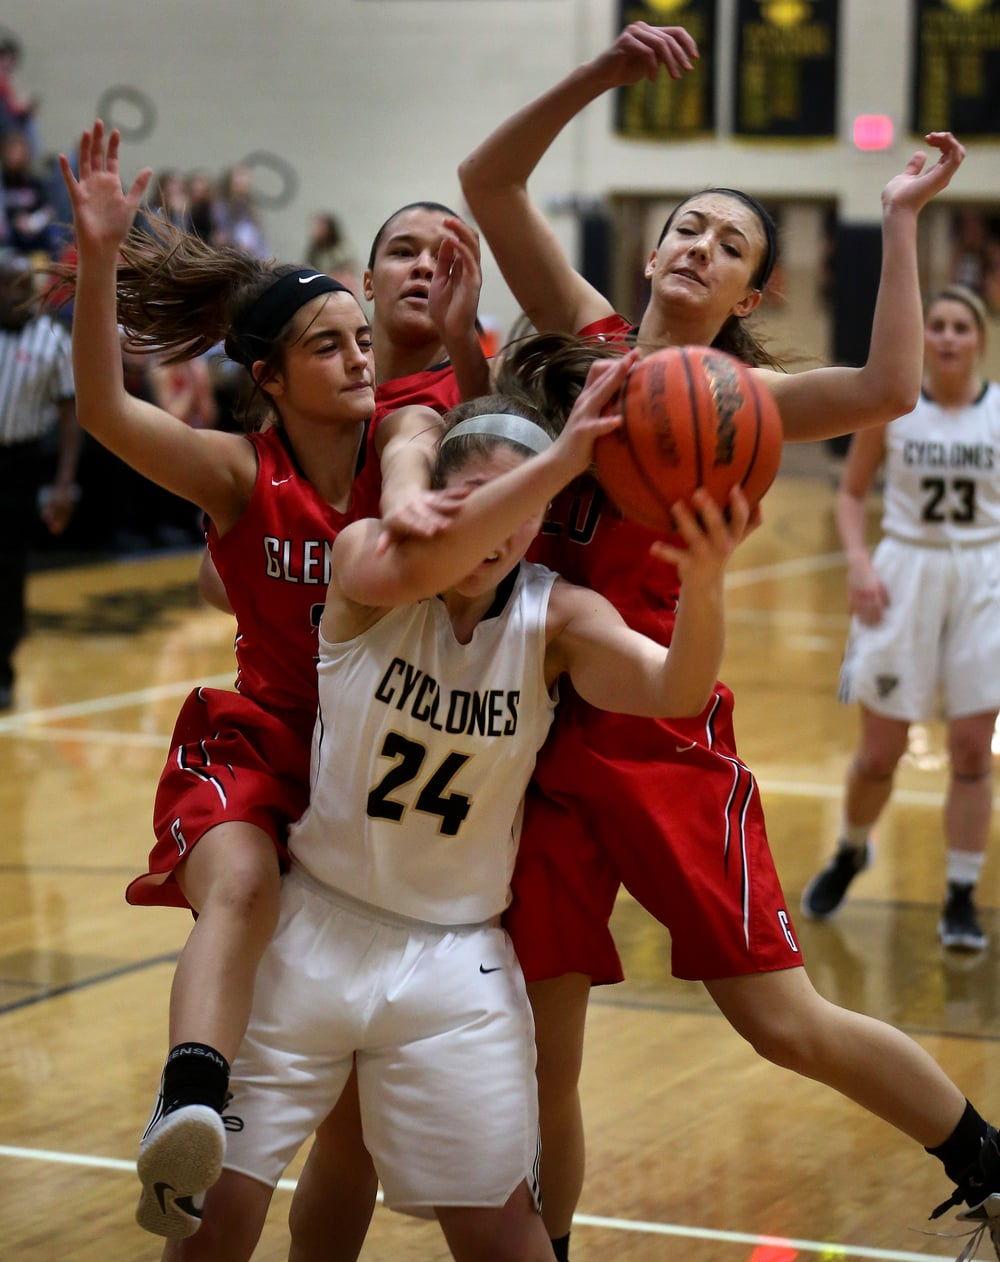 After grabbing a rebound, Cyclones player Anna Lowis is surrounded by Titan defenders from left to right: Lexie Iacono, Kiara Downey, Ciara Lahr. David Spencer/The State Journal Register